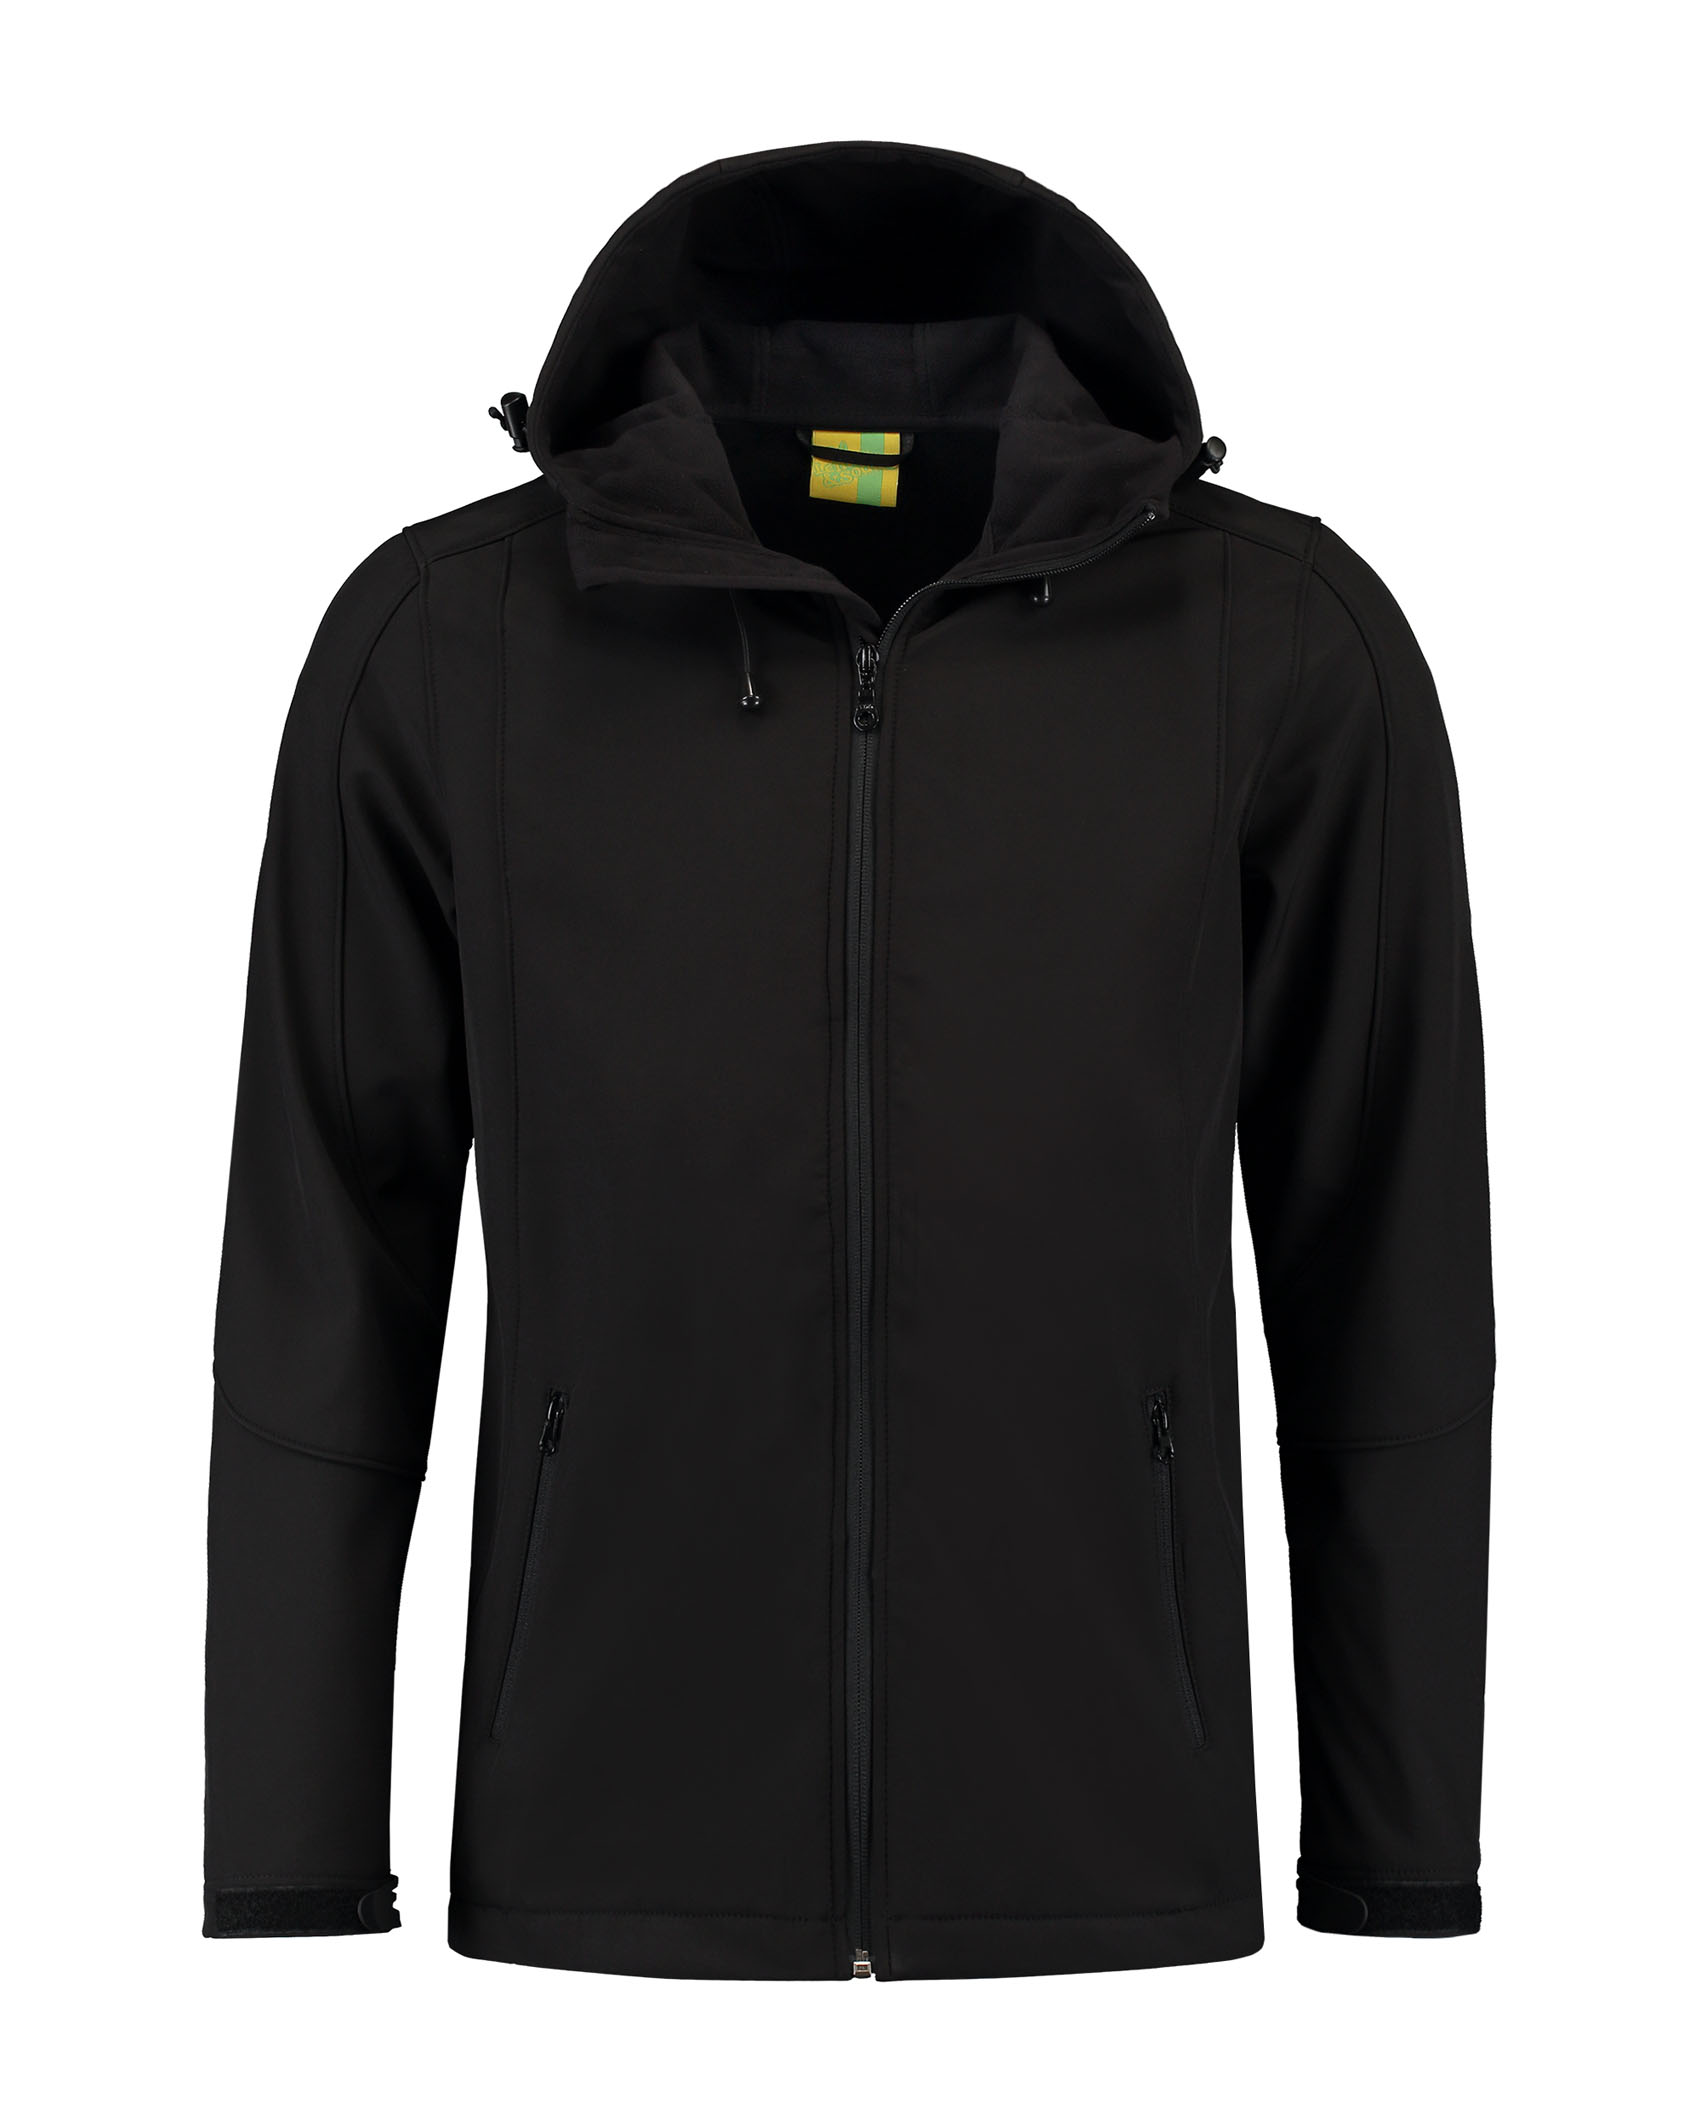 L&S Jacket Hooded Softshell for him